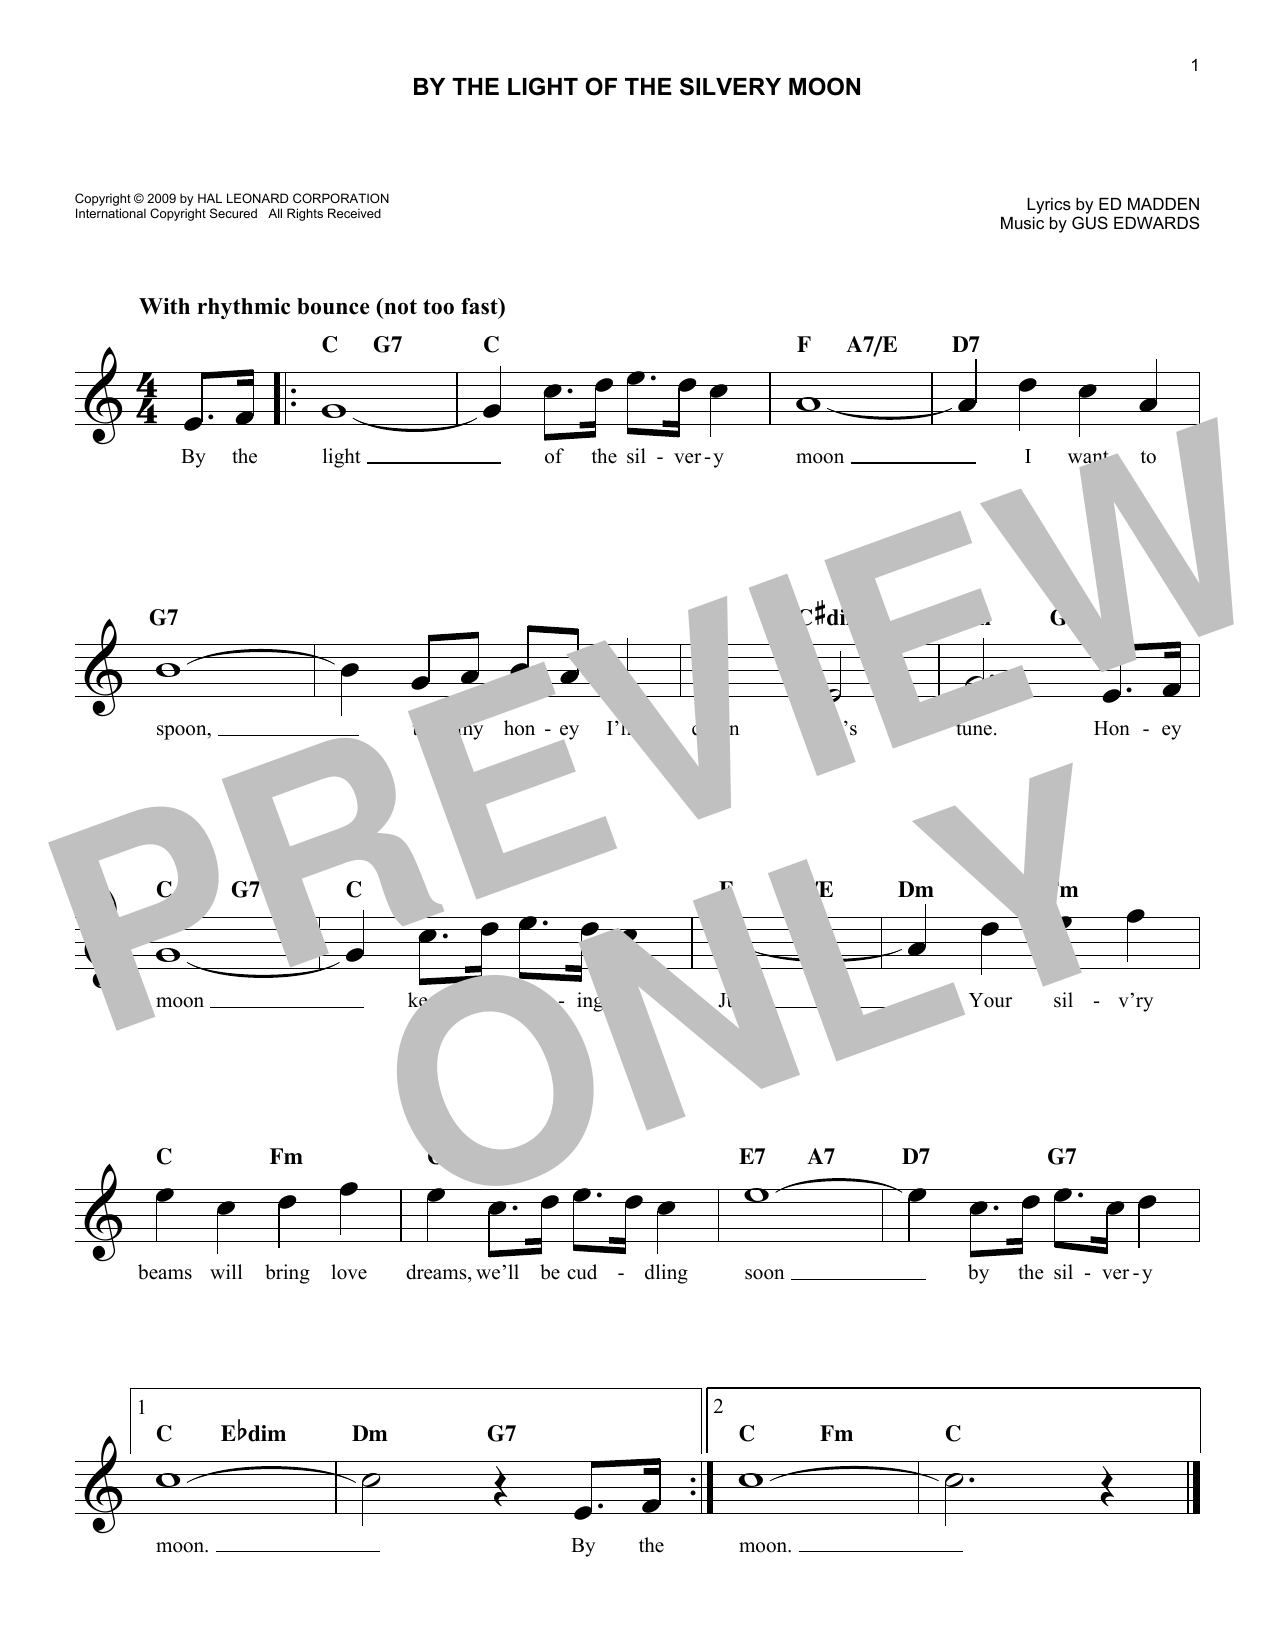 Ed Madden By The Light Of The Silvery Moon sheet music notes and chords. Download Printable PDF.